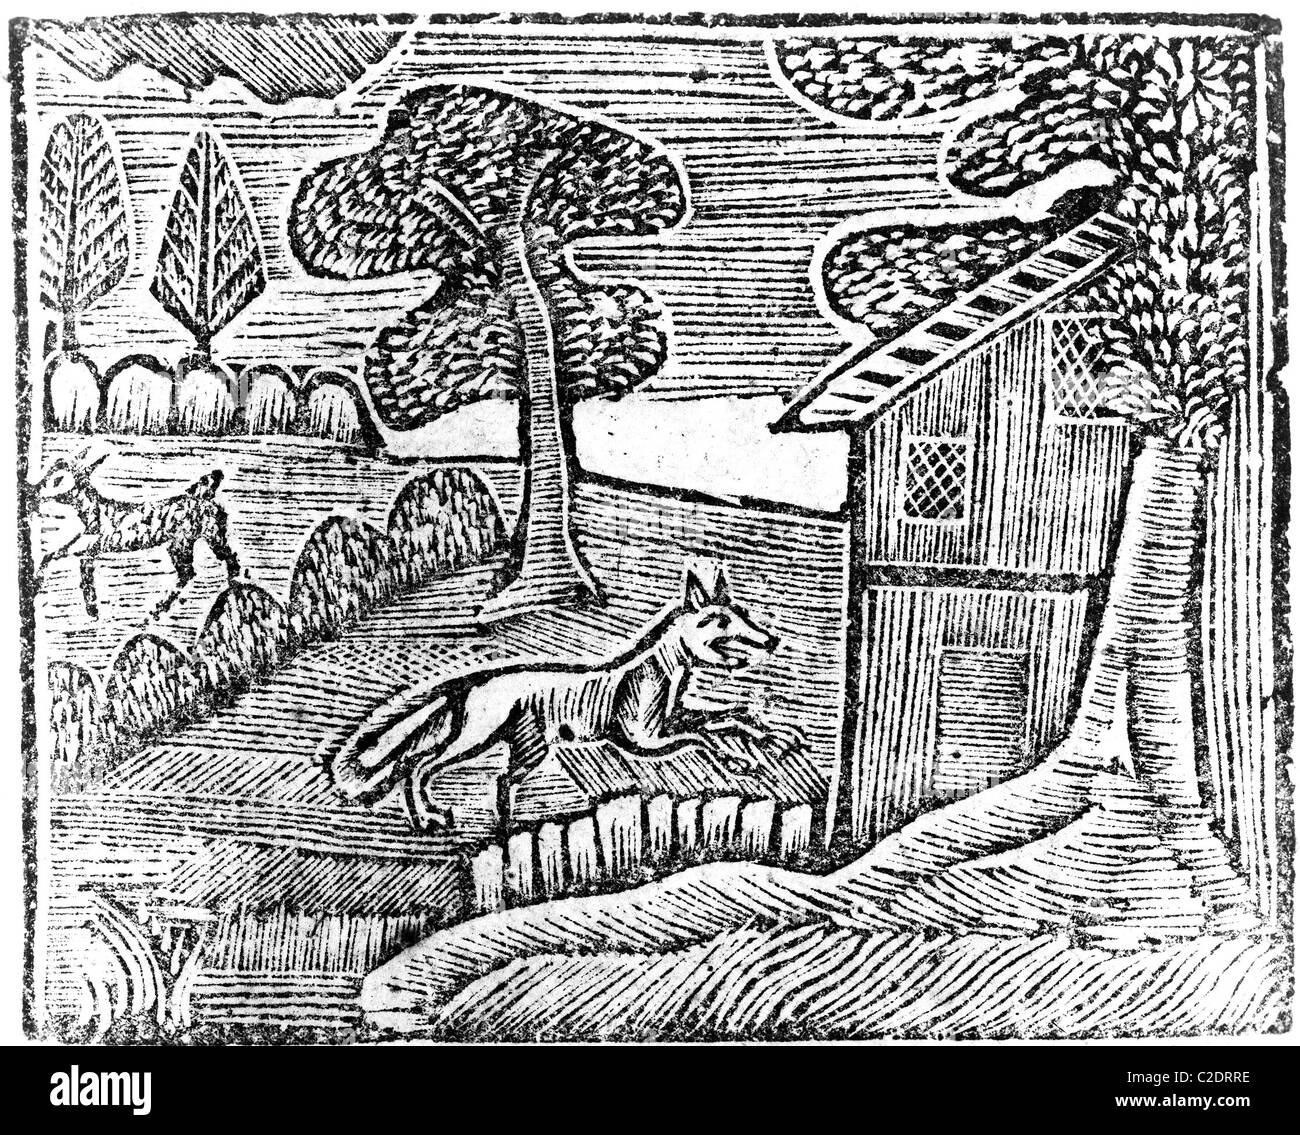 Woodcut by Thomas Dilworth - Stock Image